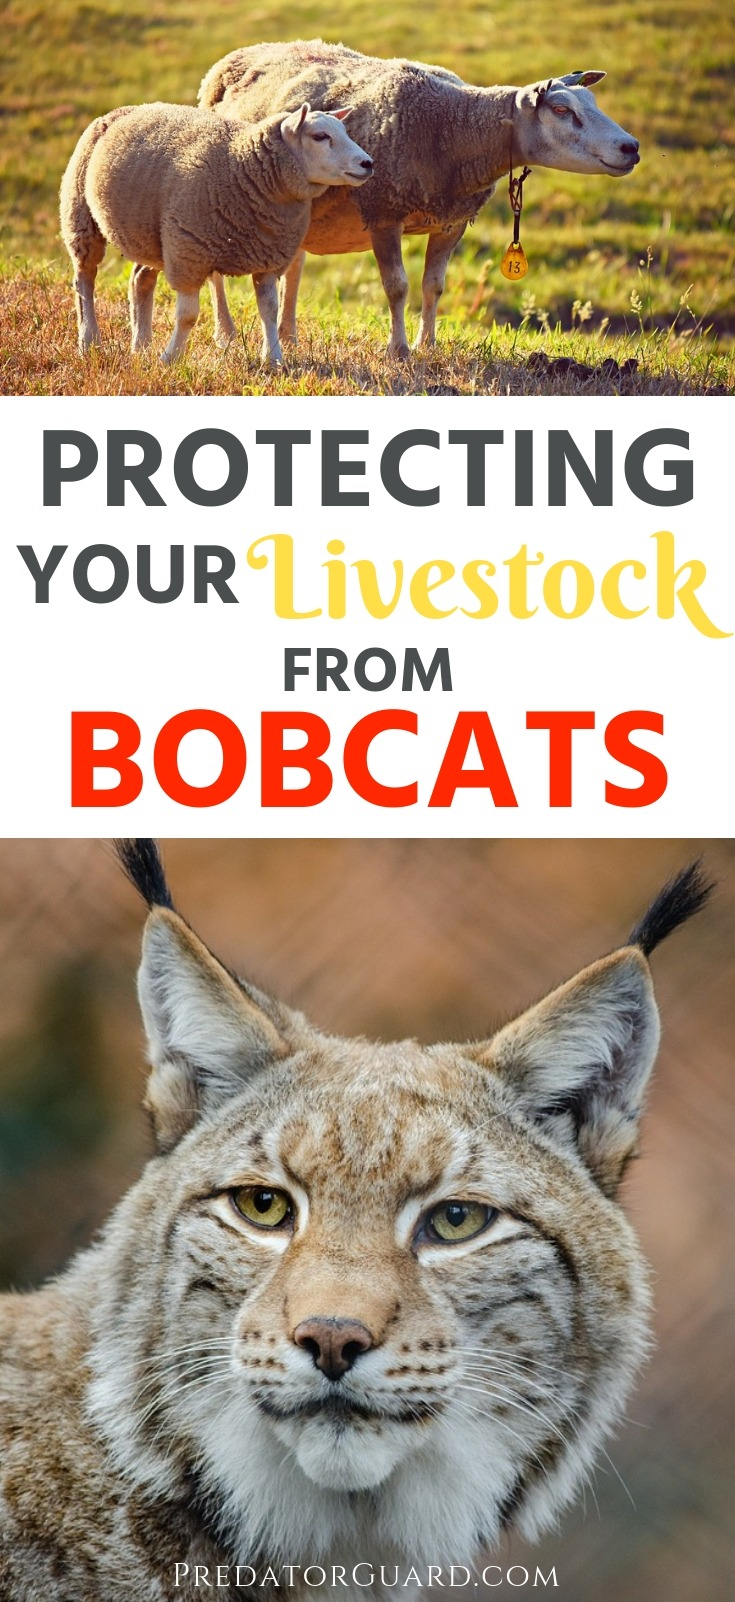 Protecting-Your-Livestock-From-Bobcats-Predator-Guard